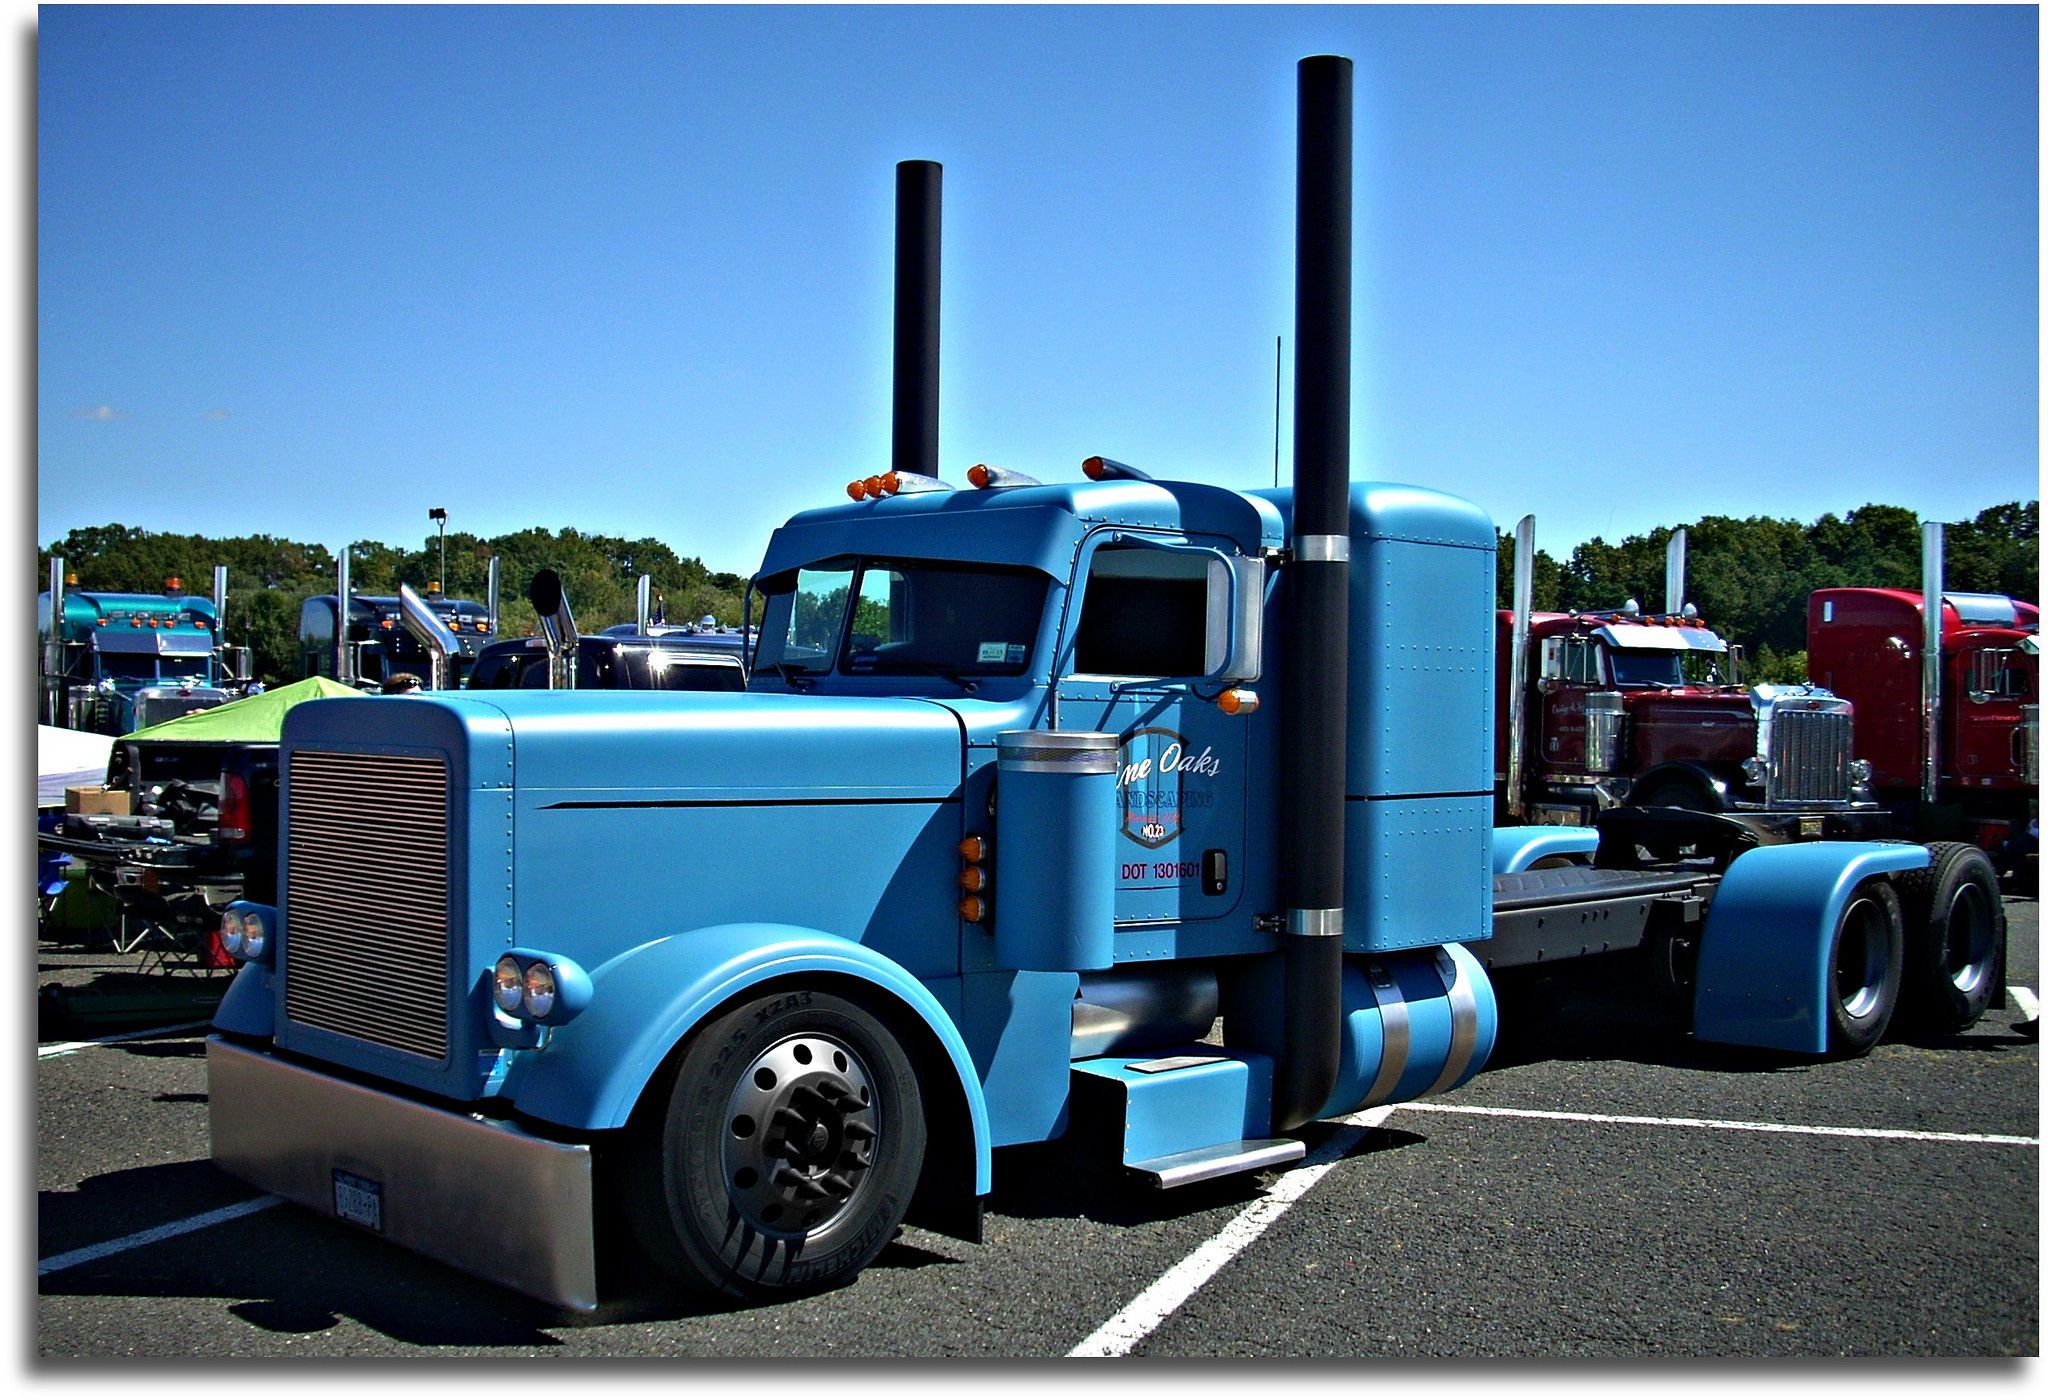 peterbilt 359 show trucks | peterbilt truck 359 custom tractor semi rigs  rig wallpaper background